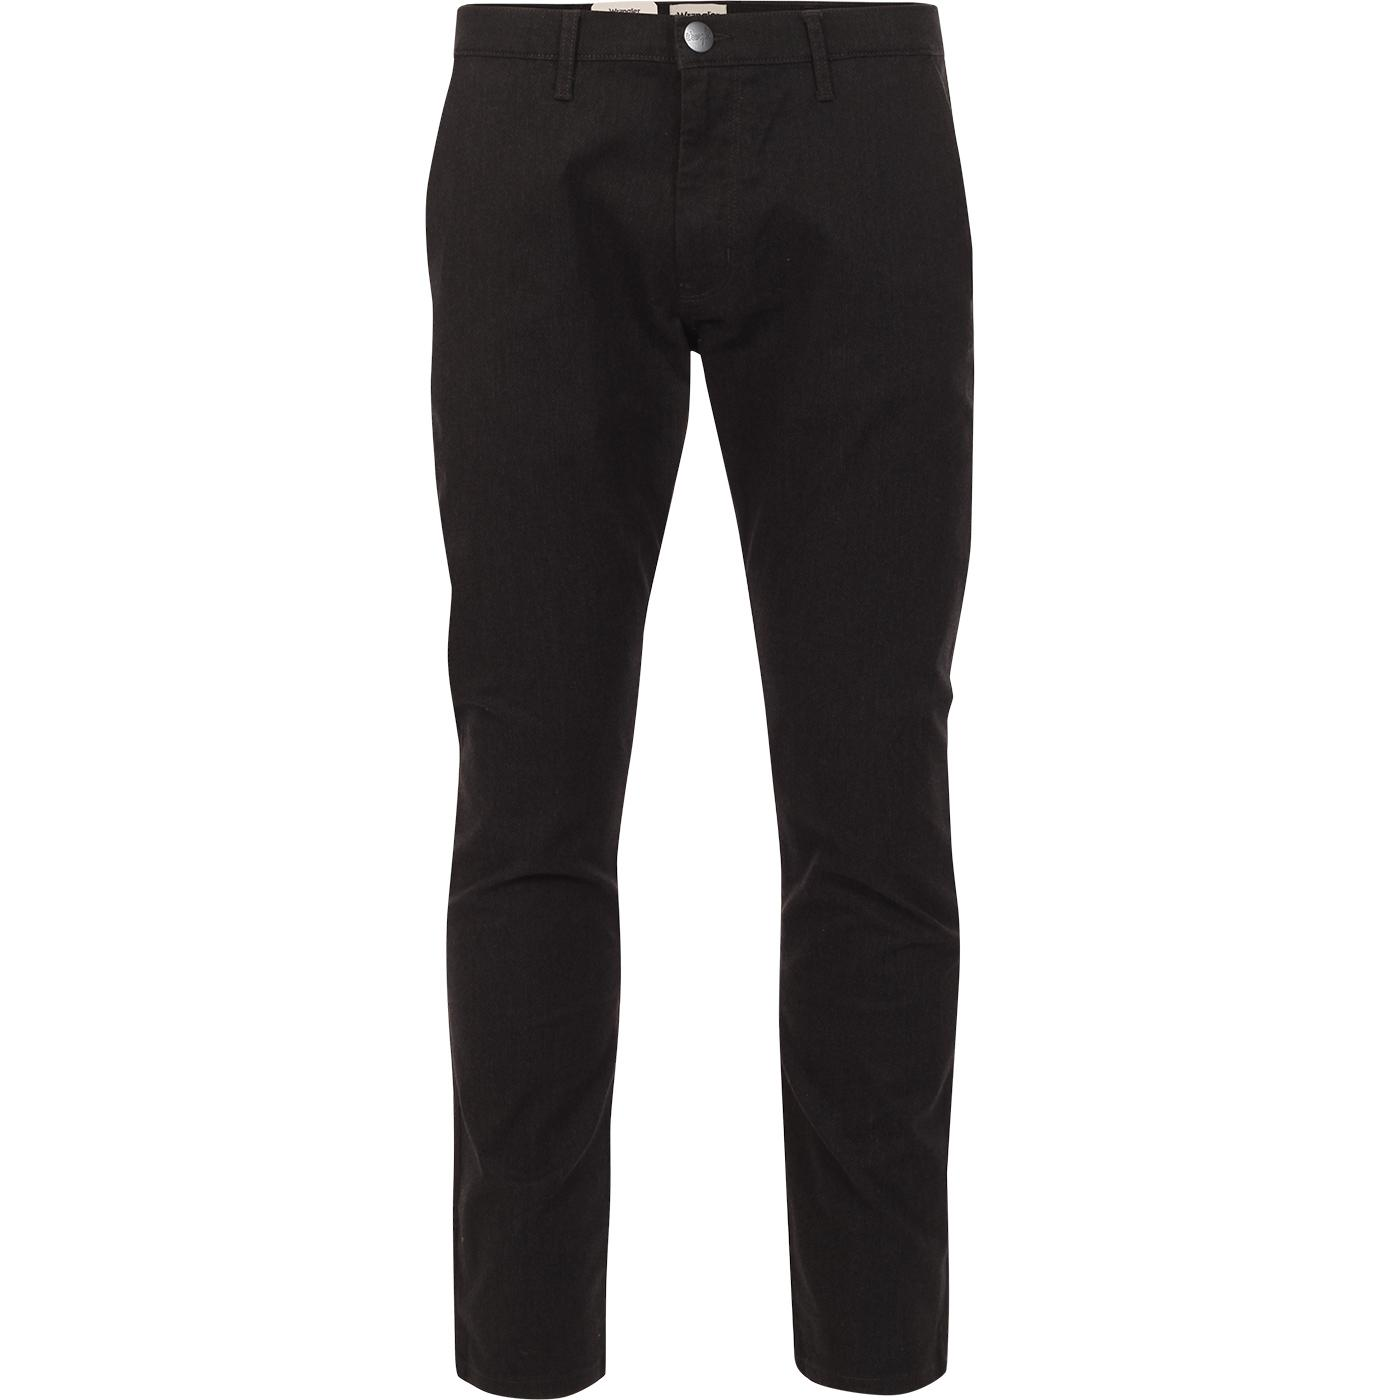 Larston WRANGLER Mod Textured Non-Denim Trousers